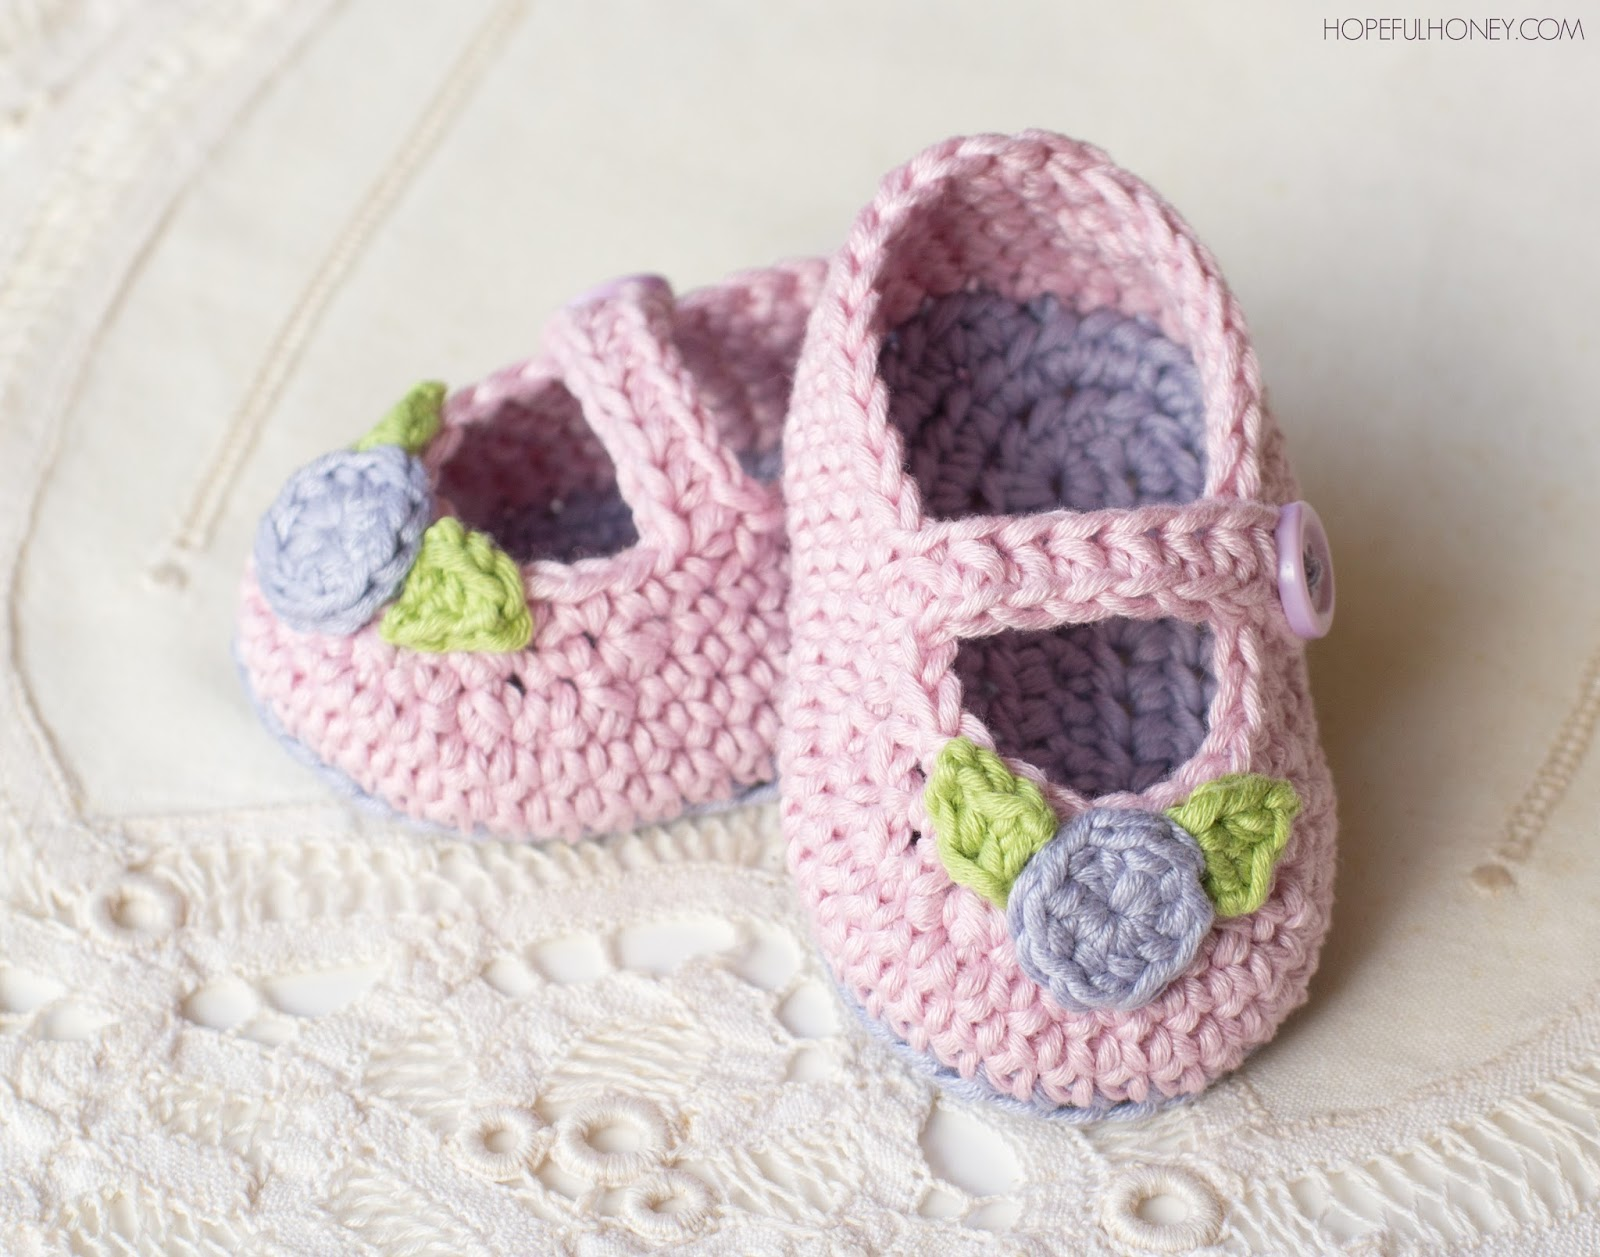 How To Crochet Baby Booties Free Patterns : Hopeful Honey Craft, Crochet, Create: Mary Jane Rosebud ...